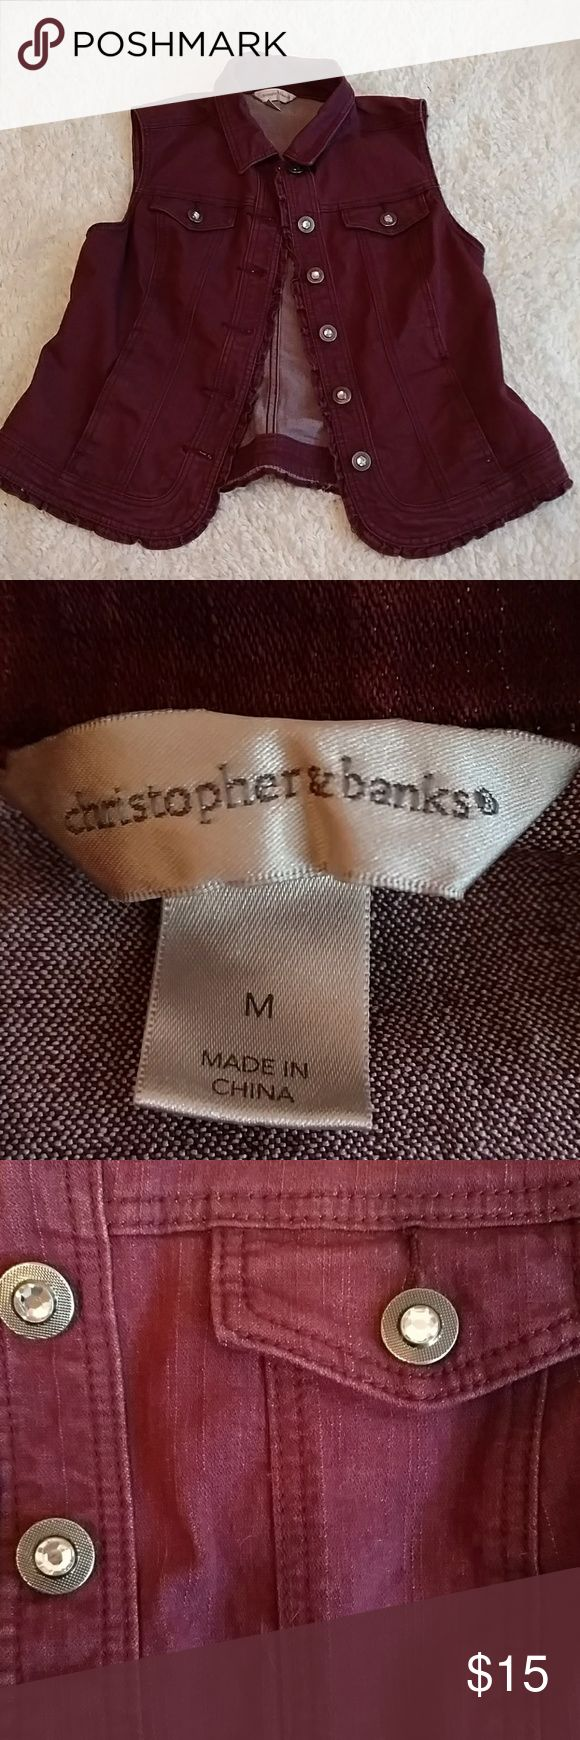 Christopher & Banks Maroon Sleeveless Jean Jacket Red Maroon cut off shoulder rippled jean jacket. Christopher & Banks, size M. Gemmed buttons. 4 pockets (2 regular and 1 on each chest). Chic and edgy. Durable materials. Christopher & Banks Jackets & Coats Vests